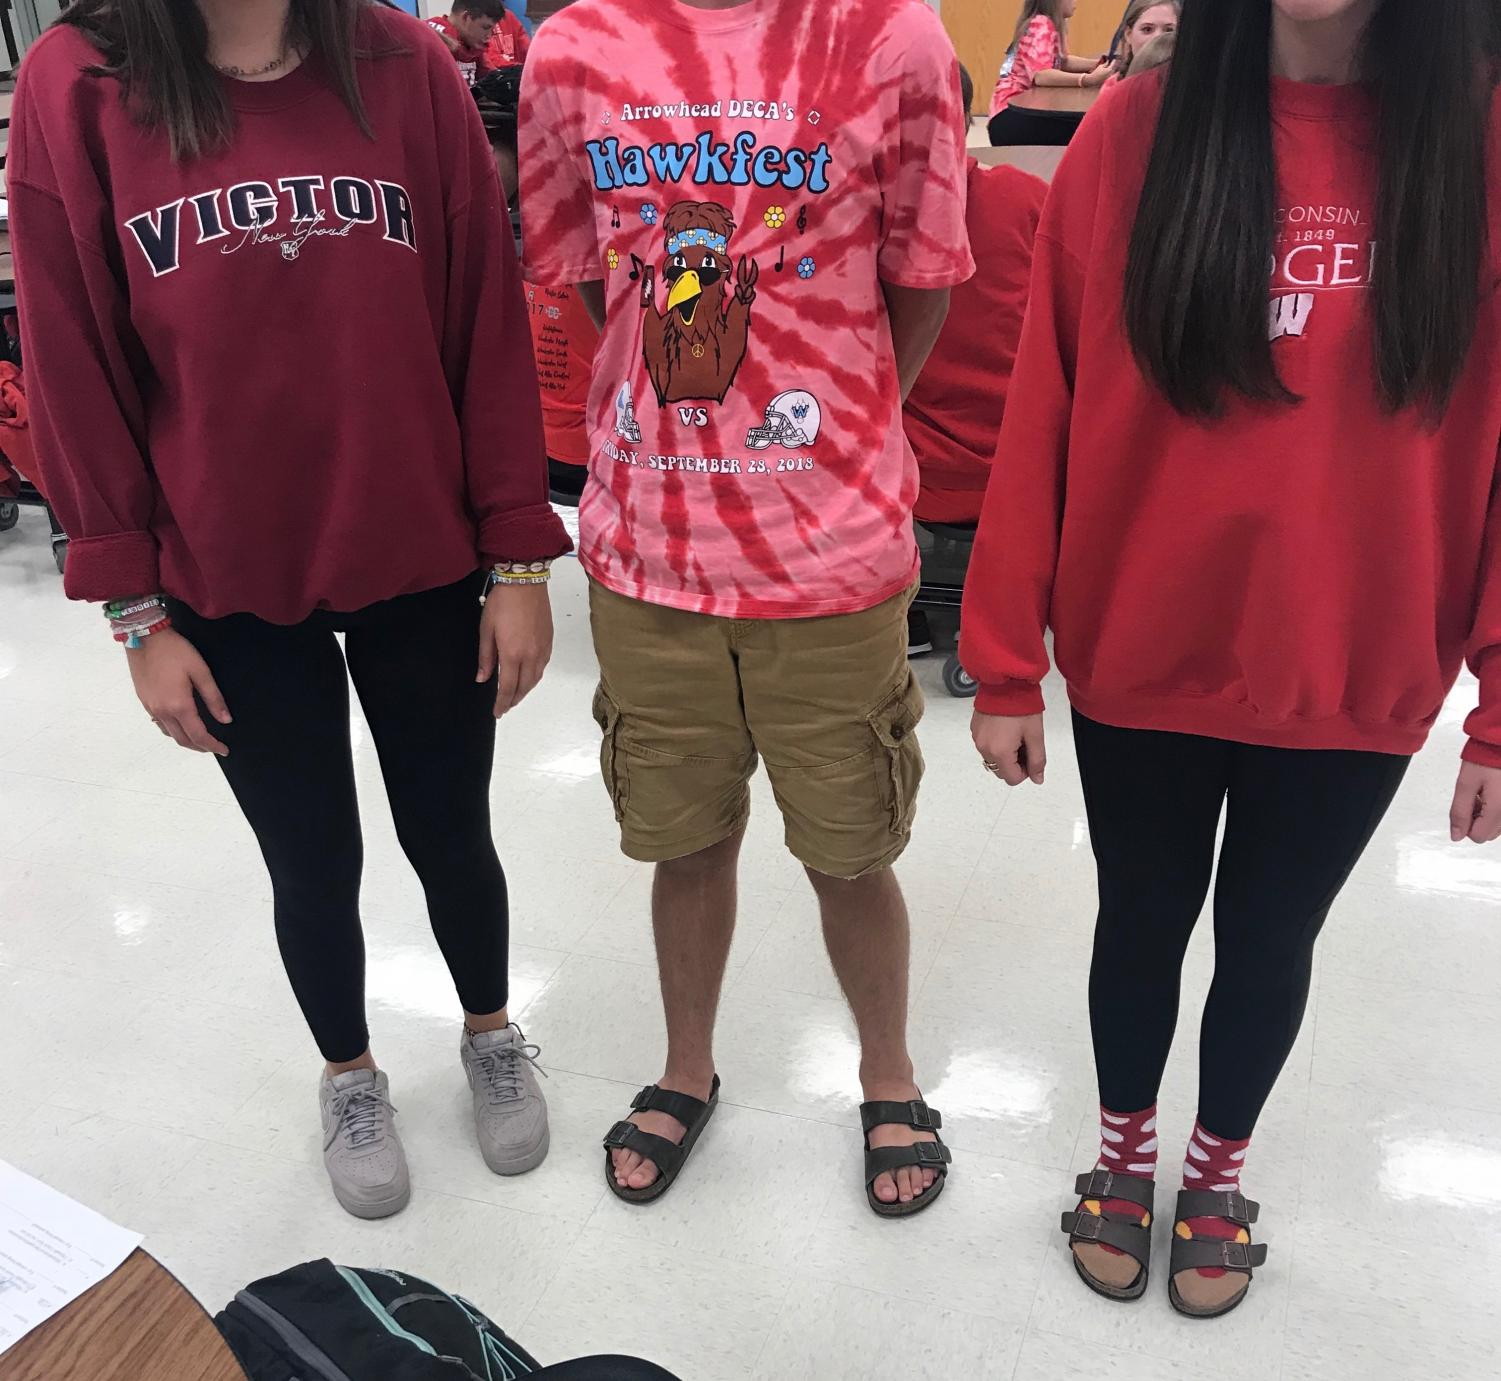 Students at Arrowhead High School who are following the dress code